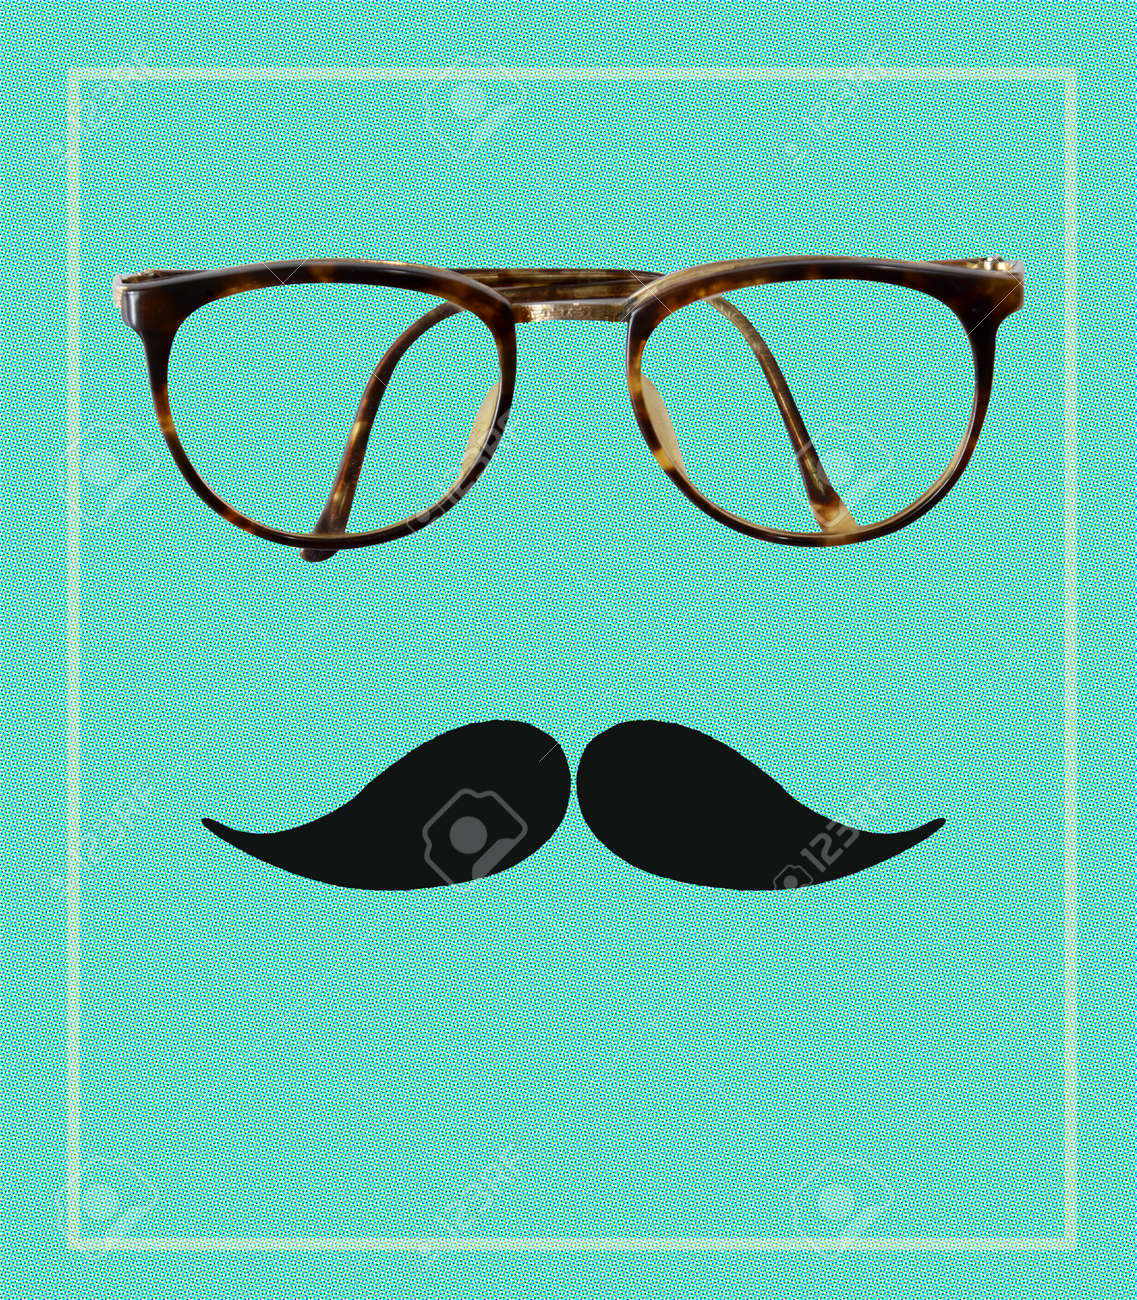 e937e56a746 Stock Photo - Vintage hipster glasses and mustache